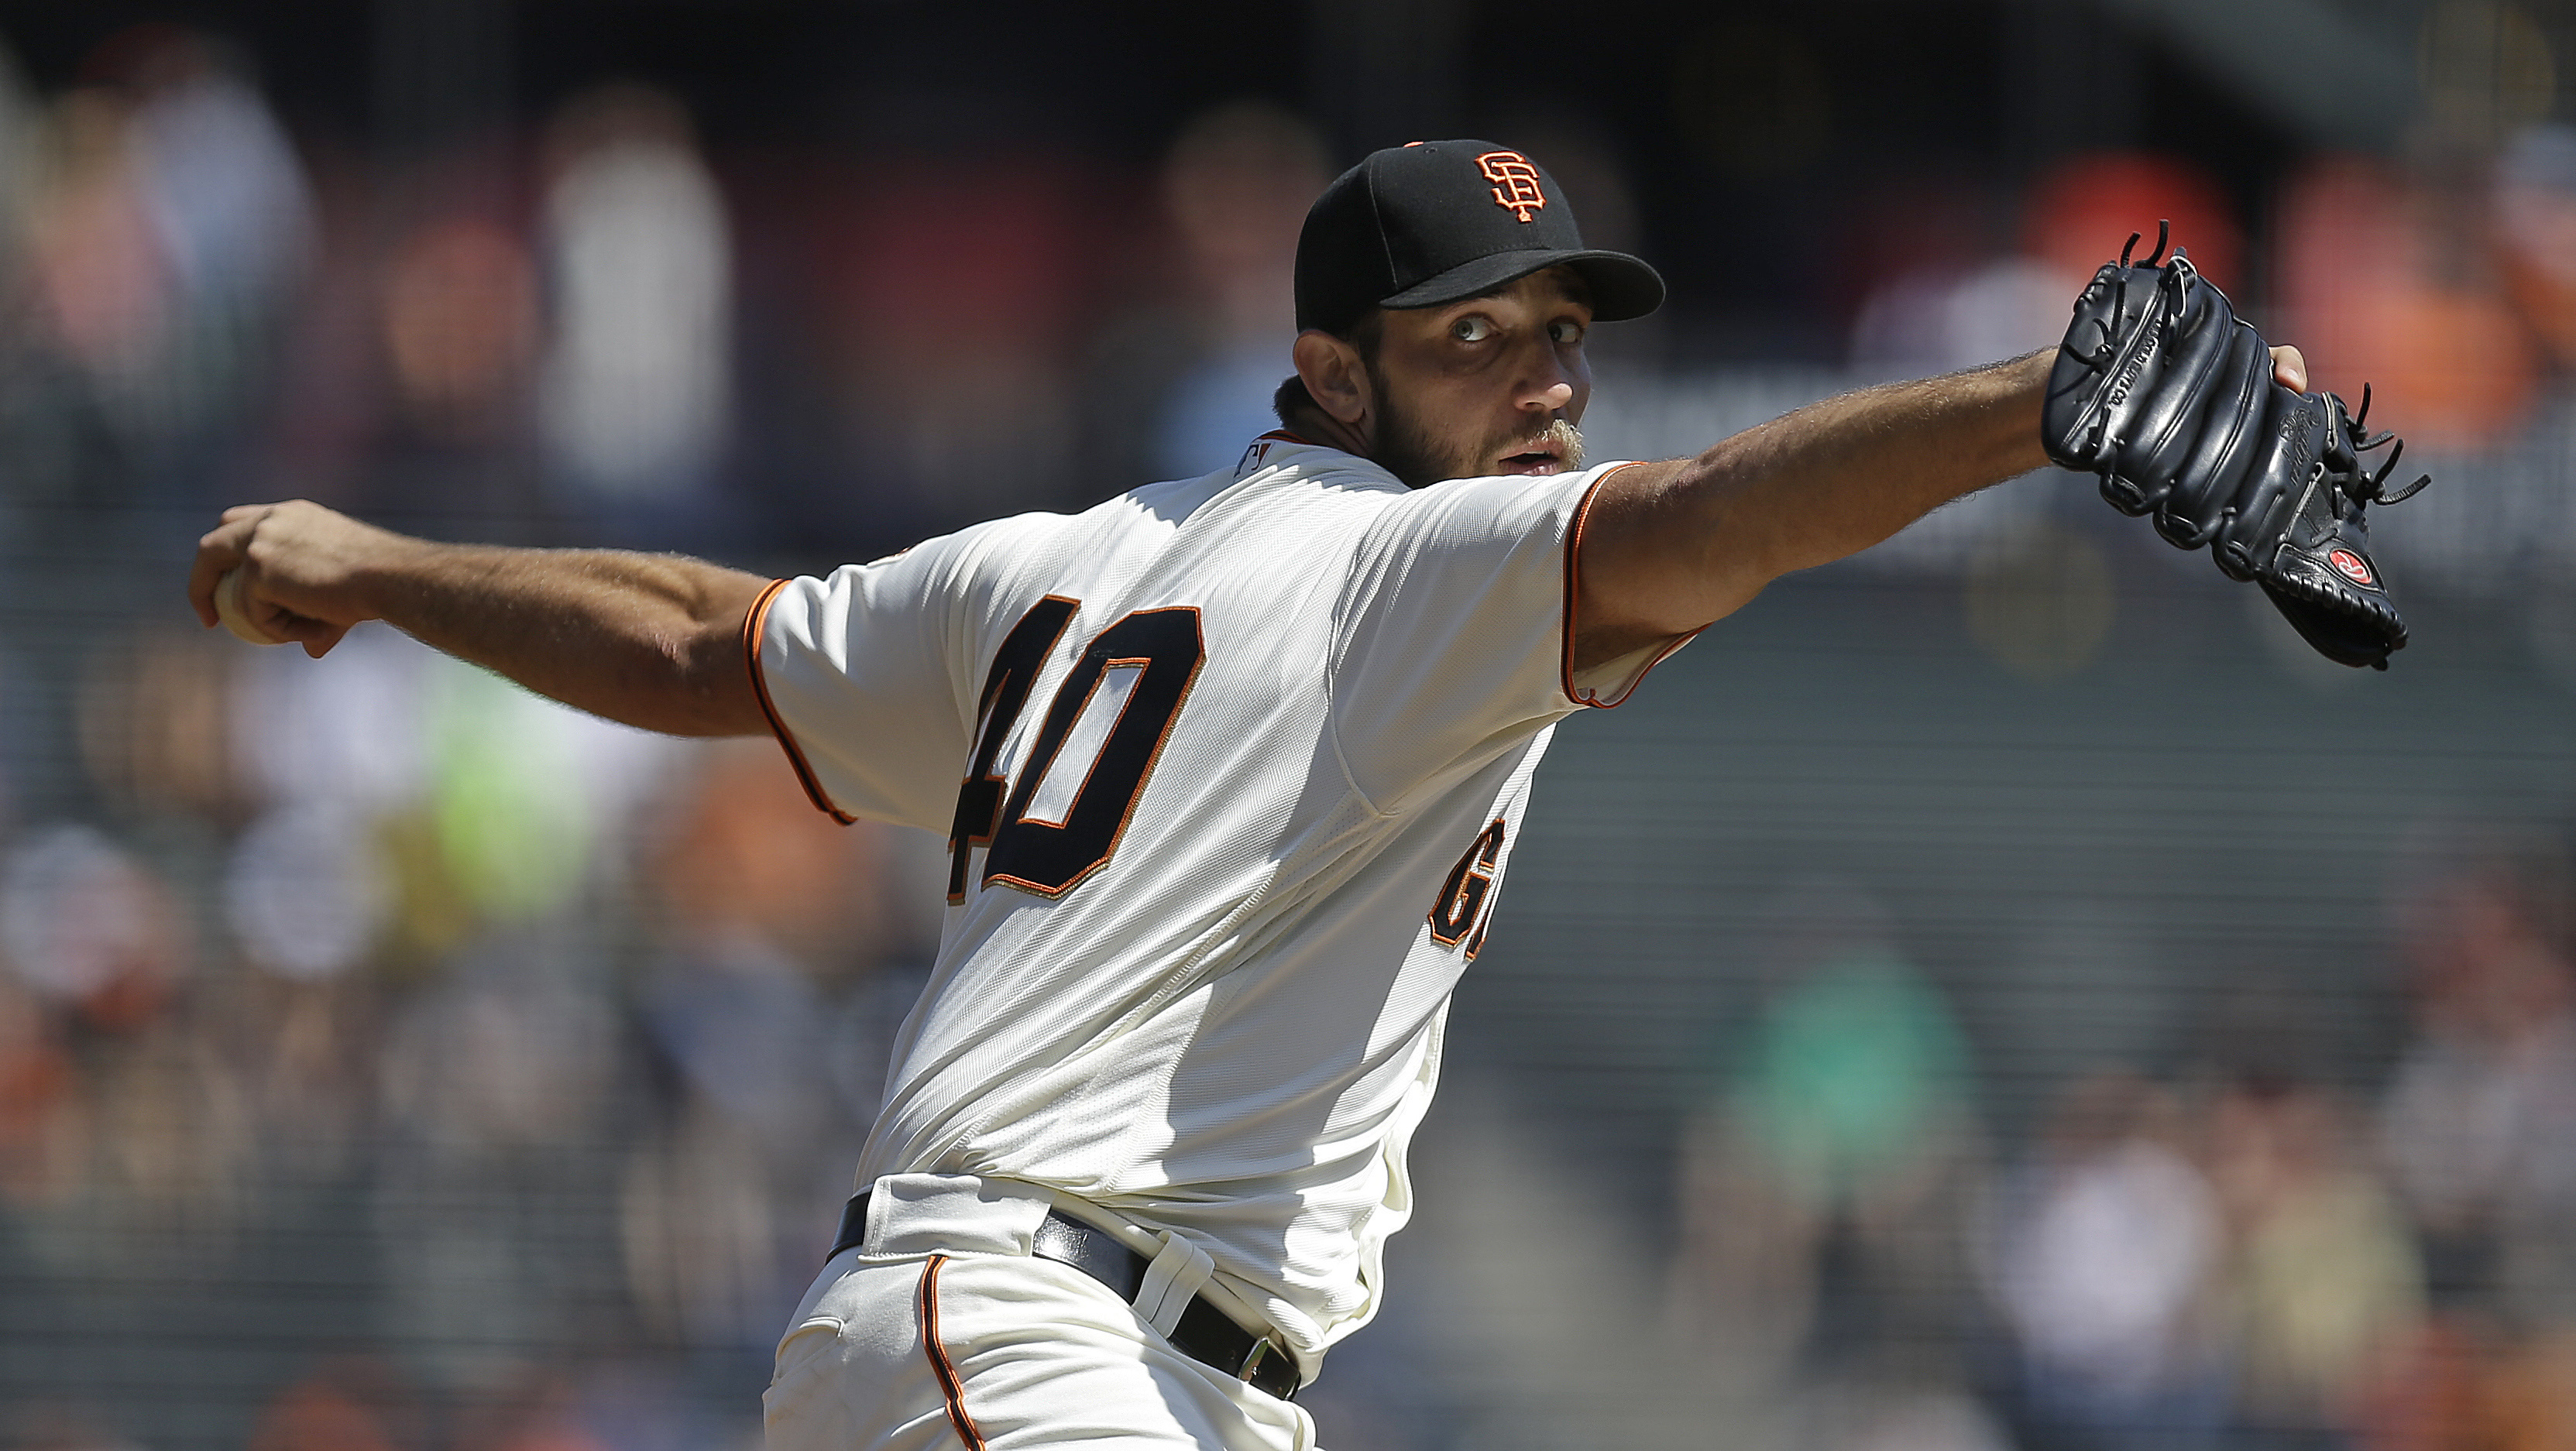 San Francisco Giants pitcher Madison Bumgarner works against the San Diego Padres in the first inning of a baseball game Wednesday, Sept. 14, 2016, in San Francisco. (AP Photo/Ben Margot)